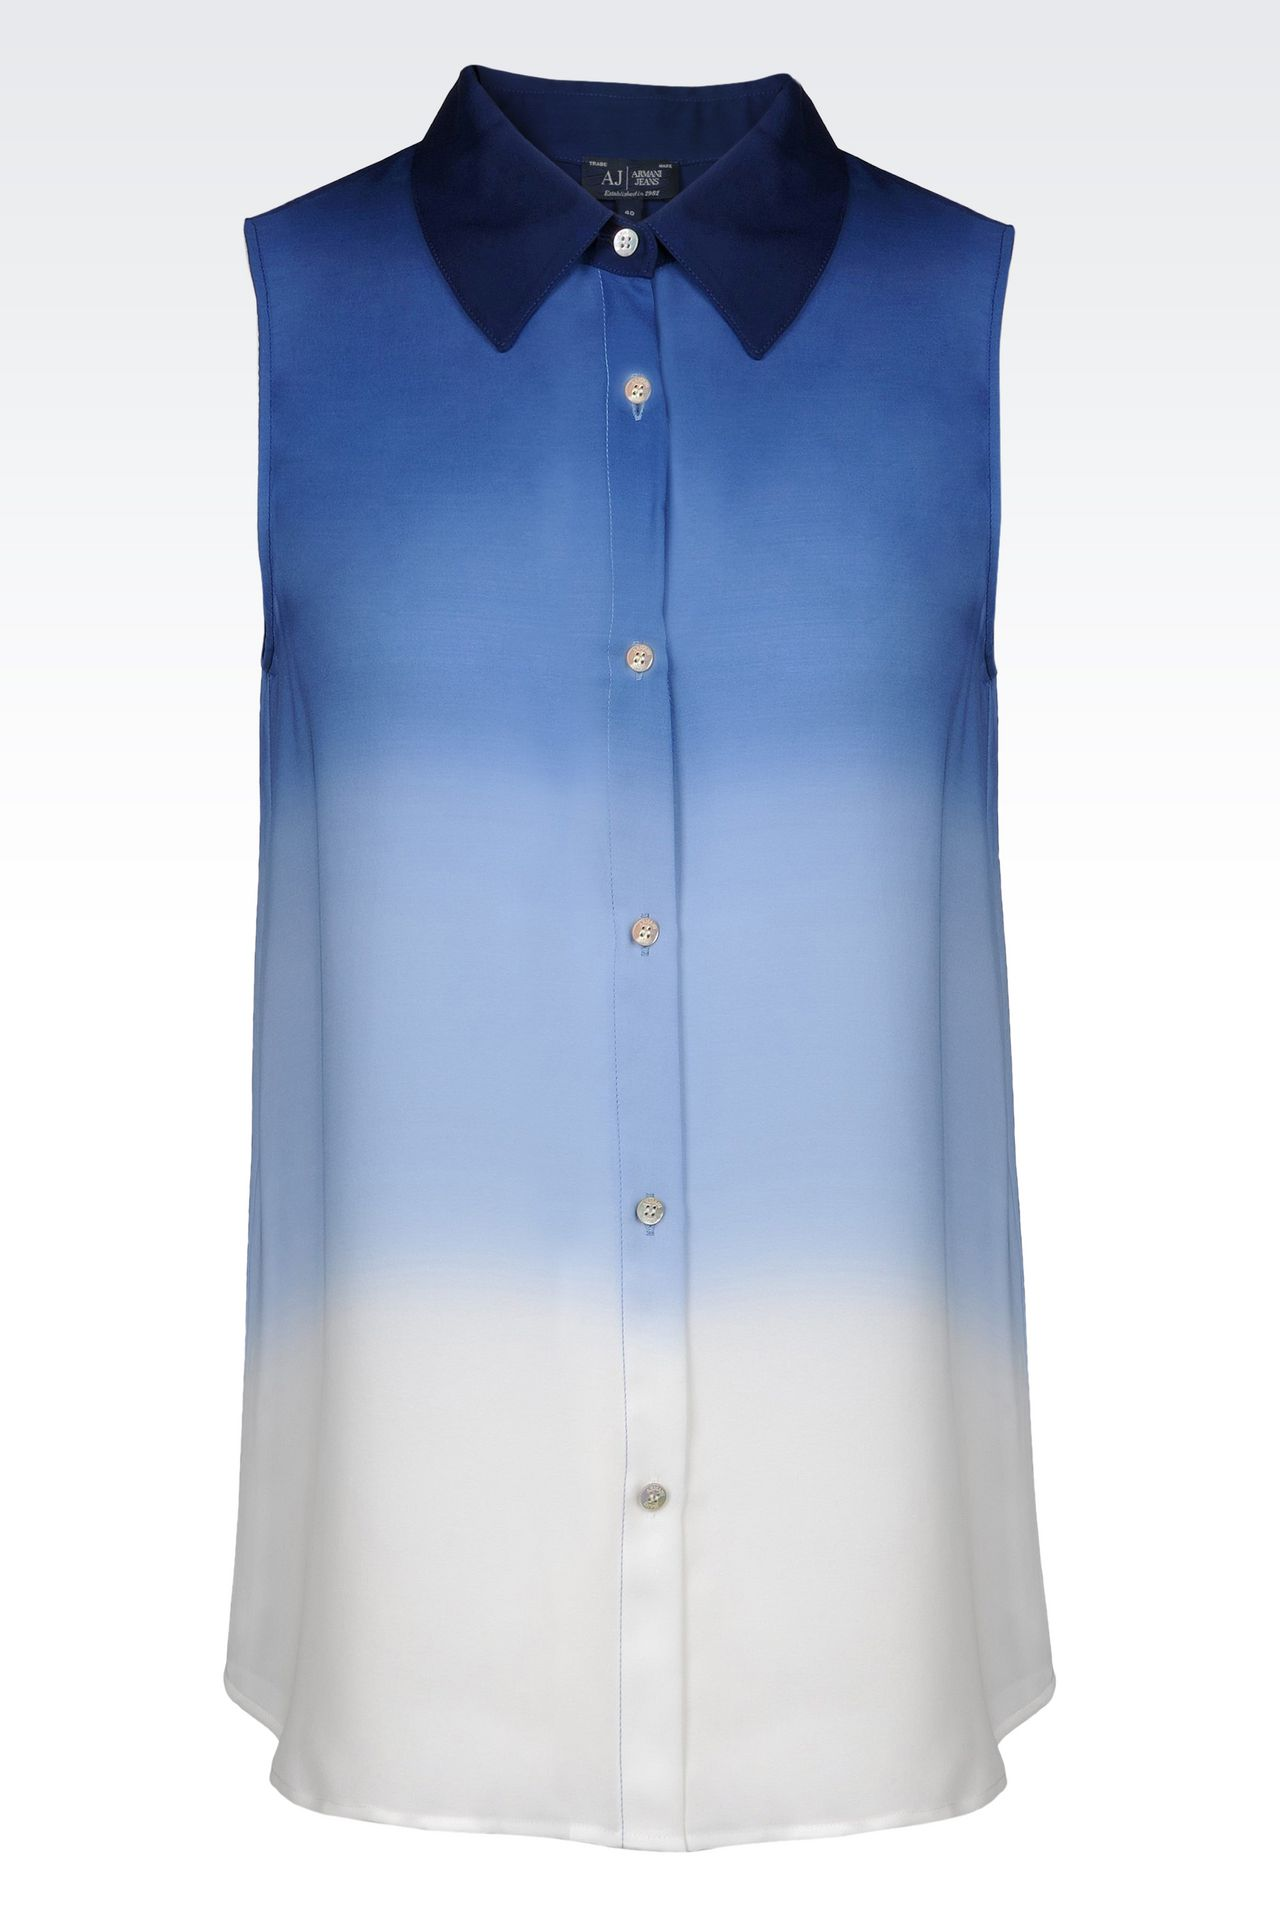 SHIRT IN TIE-DYE EFFECT SILK: Sleeveless shirts Women by Armani - 0